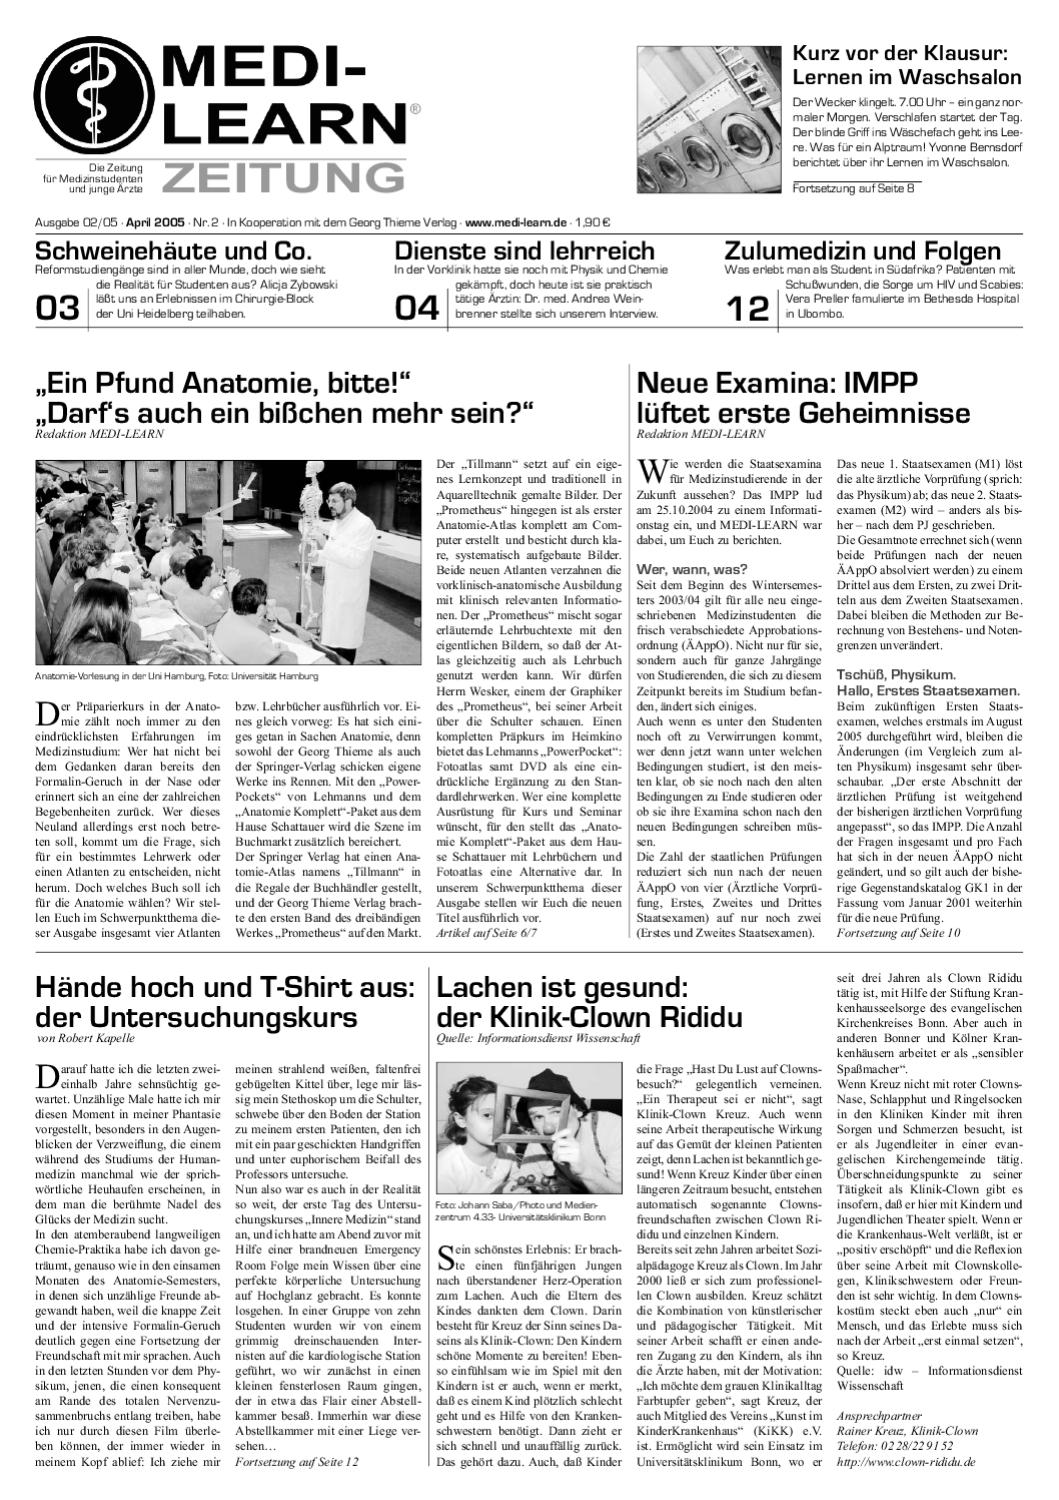 MEDI-LEARN Zeitung 01/2005 by MEDI-LEARN - issuu